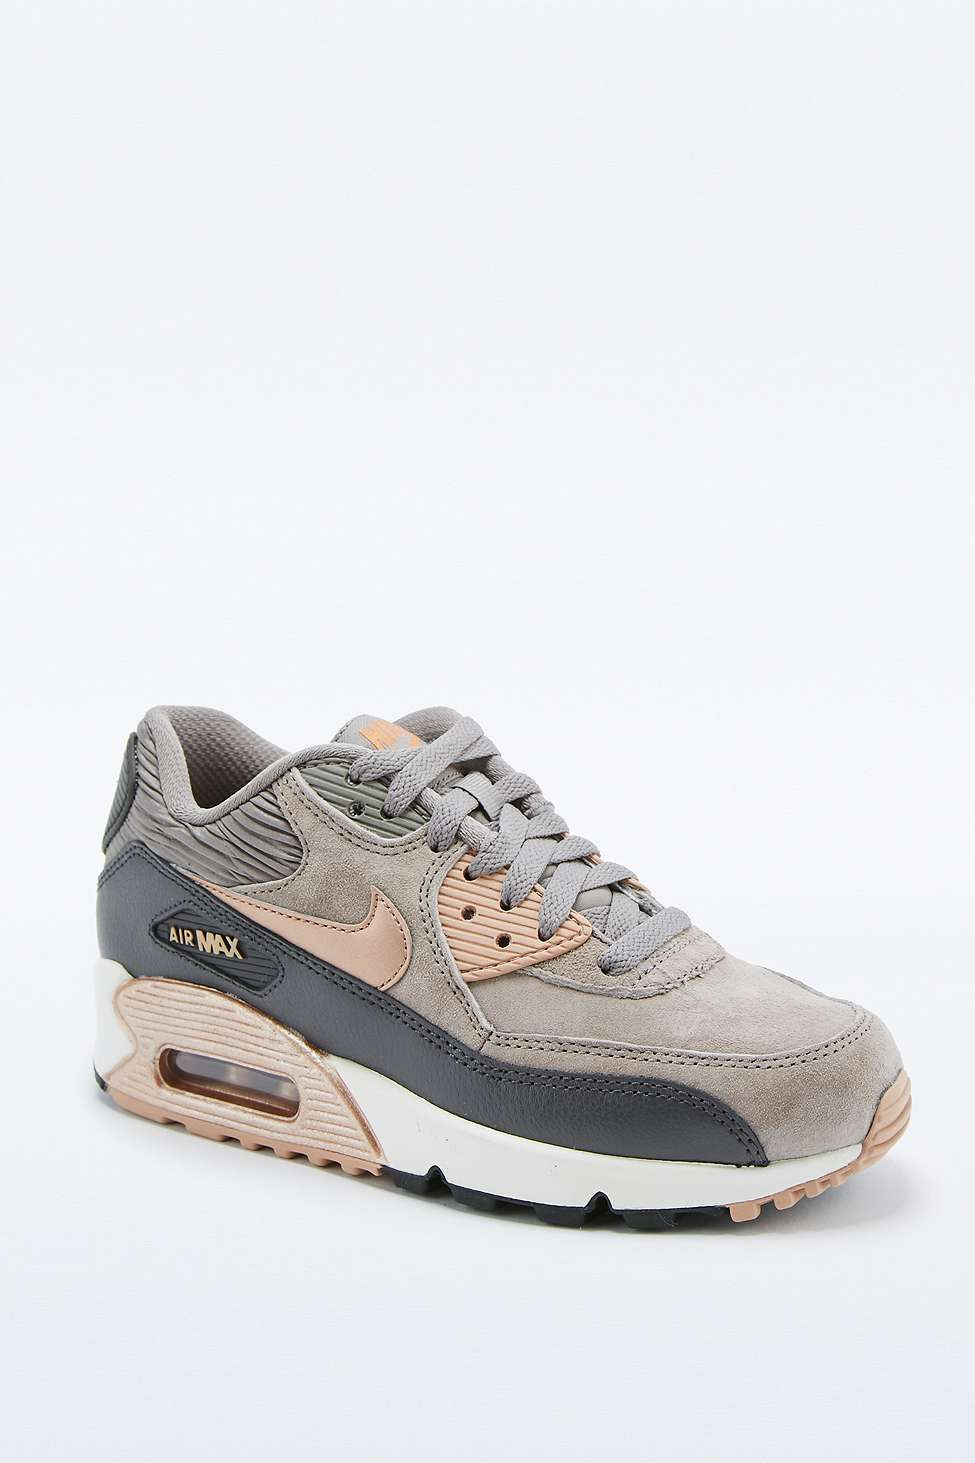 Laura Begum on in 2019 | Sneakers nike, Air max 90 premium